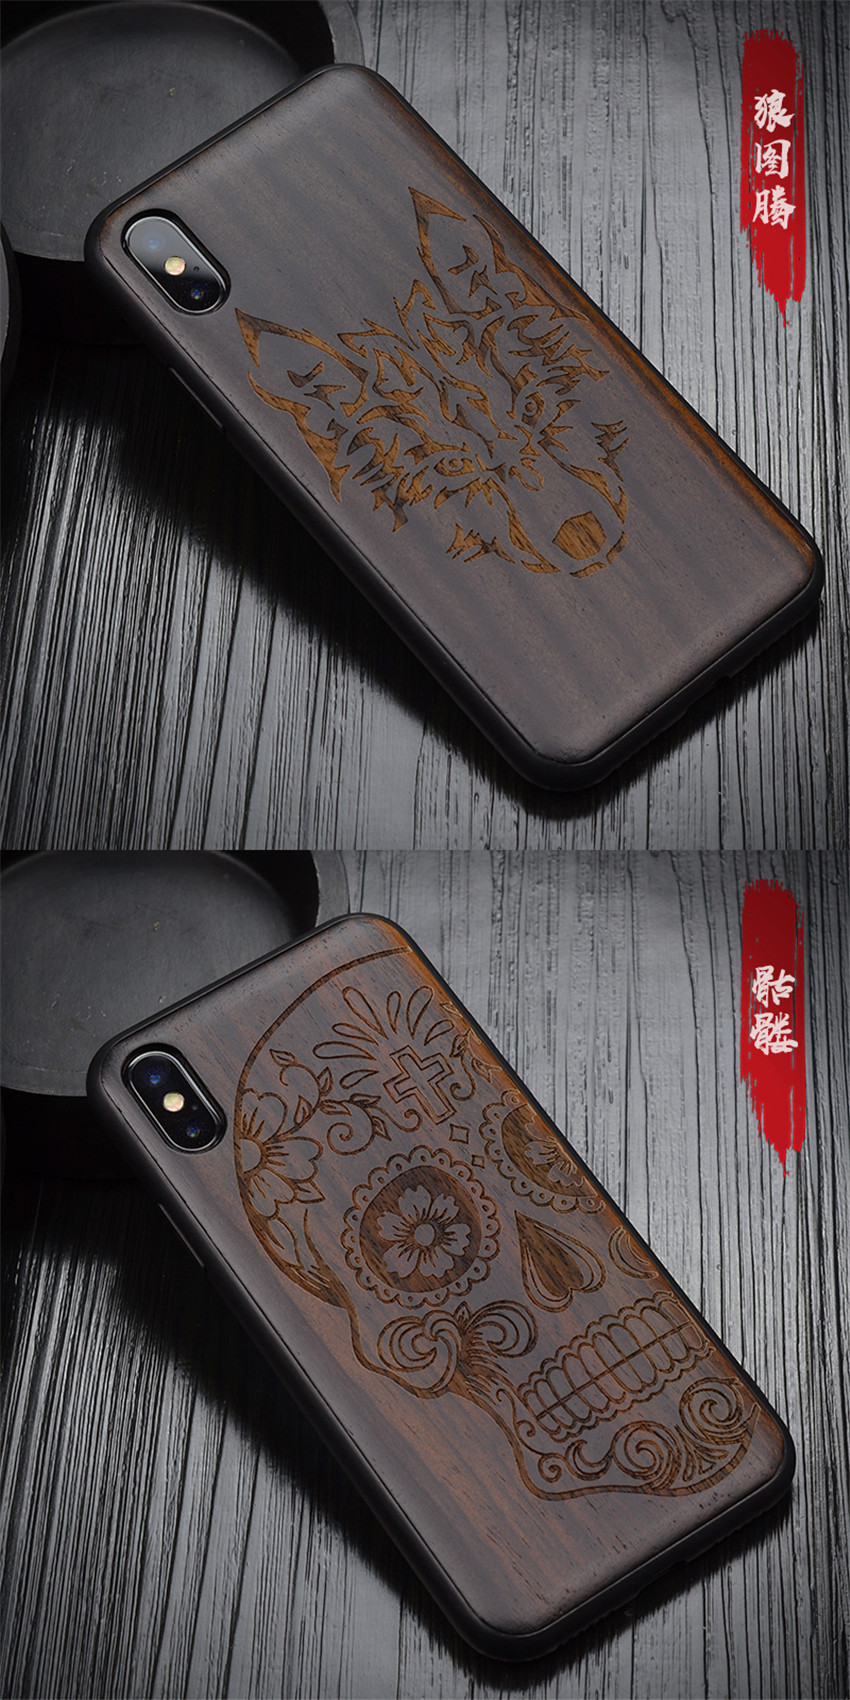 2018 New For iPhone X Case Black Ebony Wood Cover For iPhone X iPhone 10 Carved TPU Bumper Wooden Protective Case 5 (11)